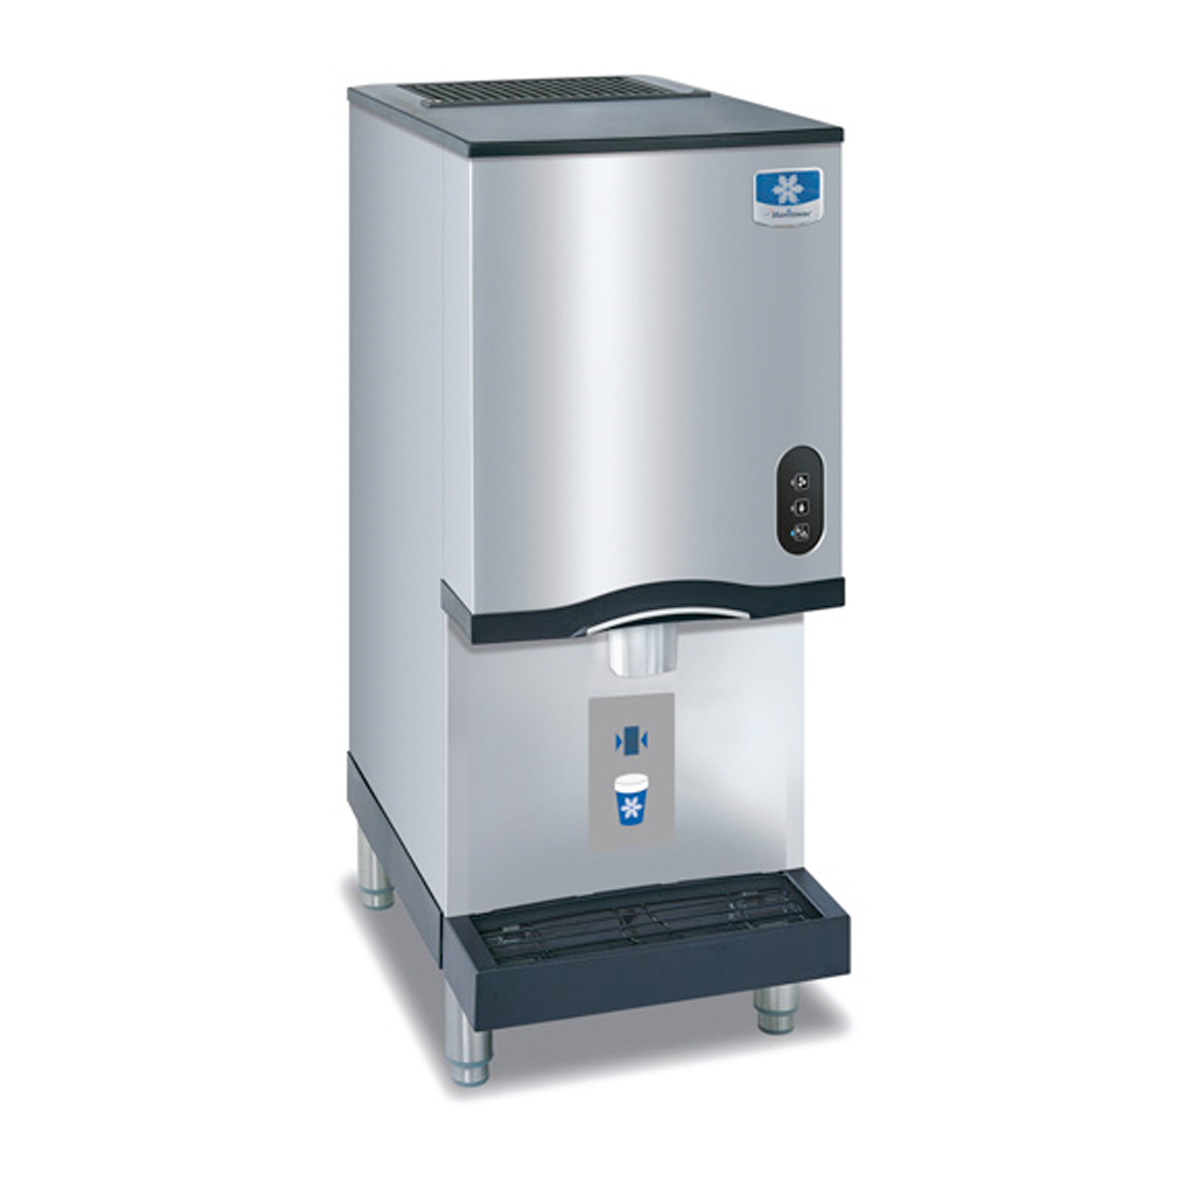 Countertop Nugget Ice Maker Machine : Manitowoc Ice Nugget Style Countertop 261 lb Ice Maker and Water ...